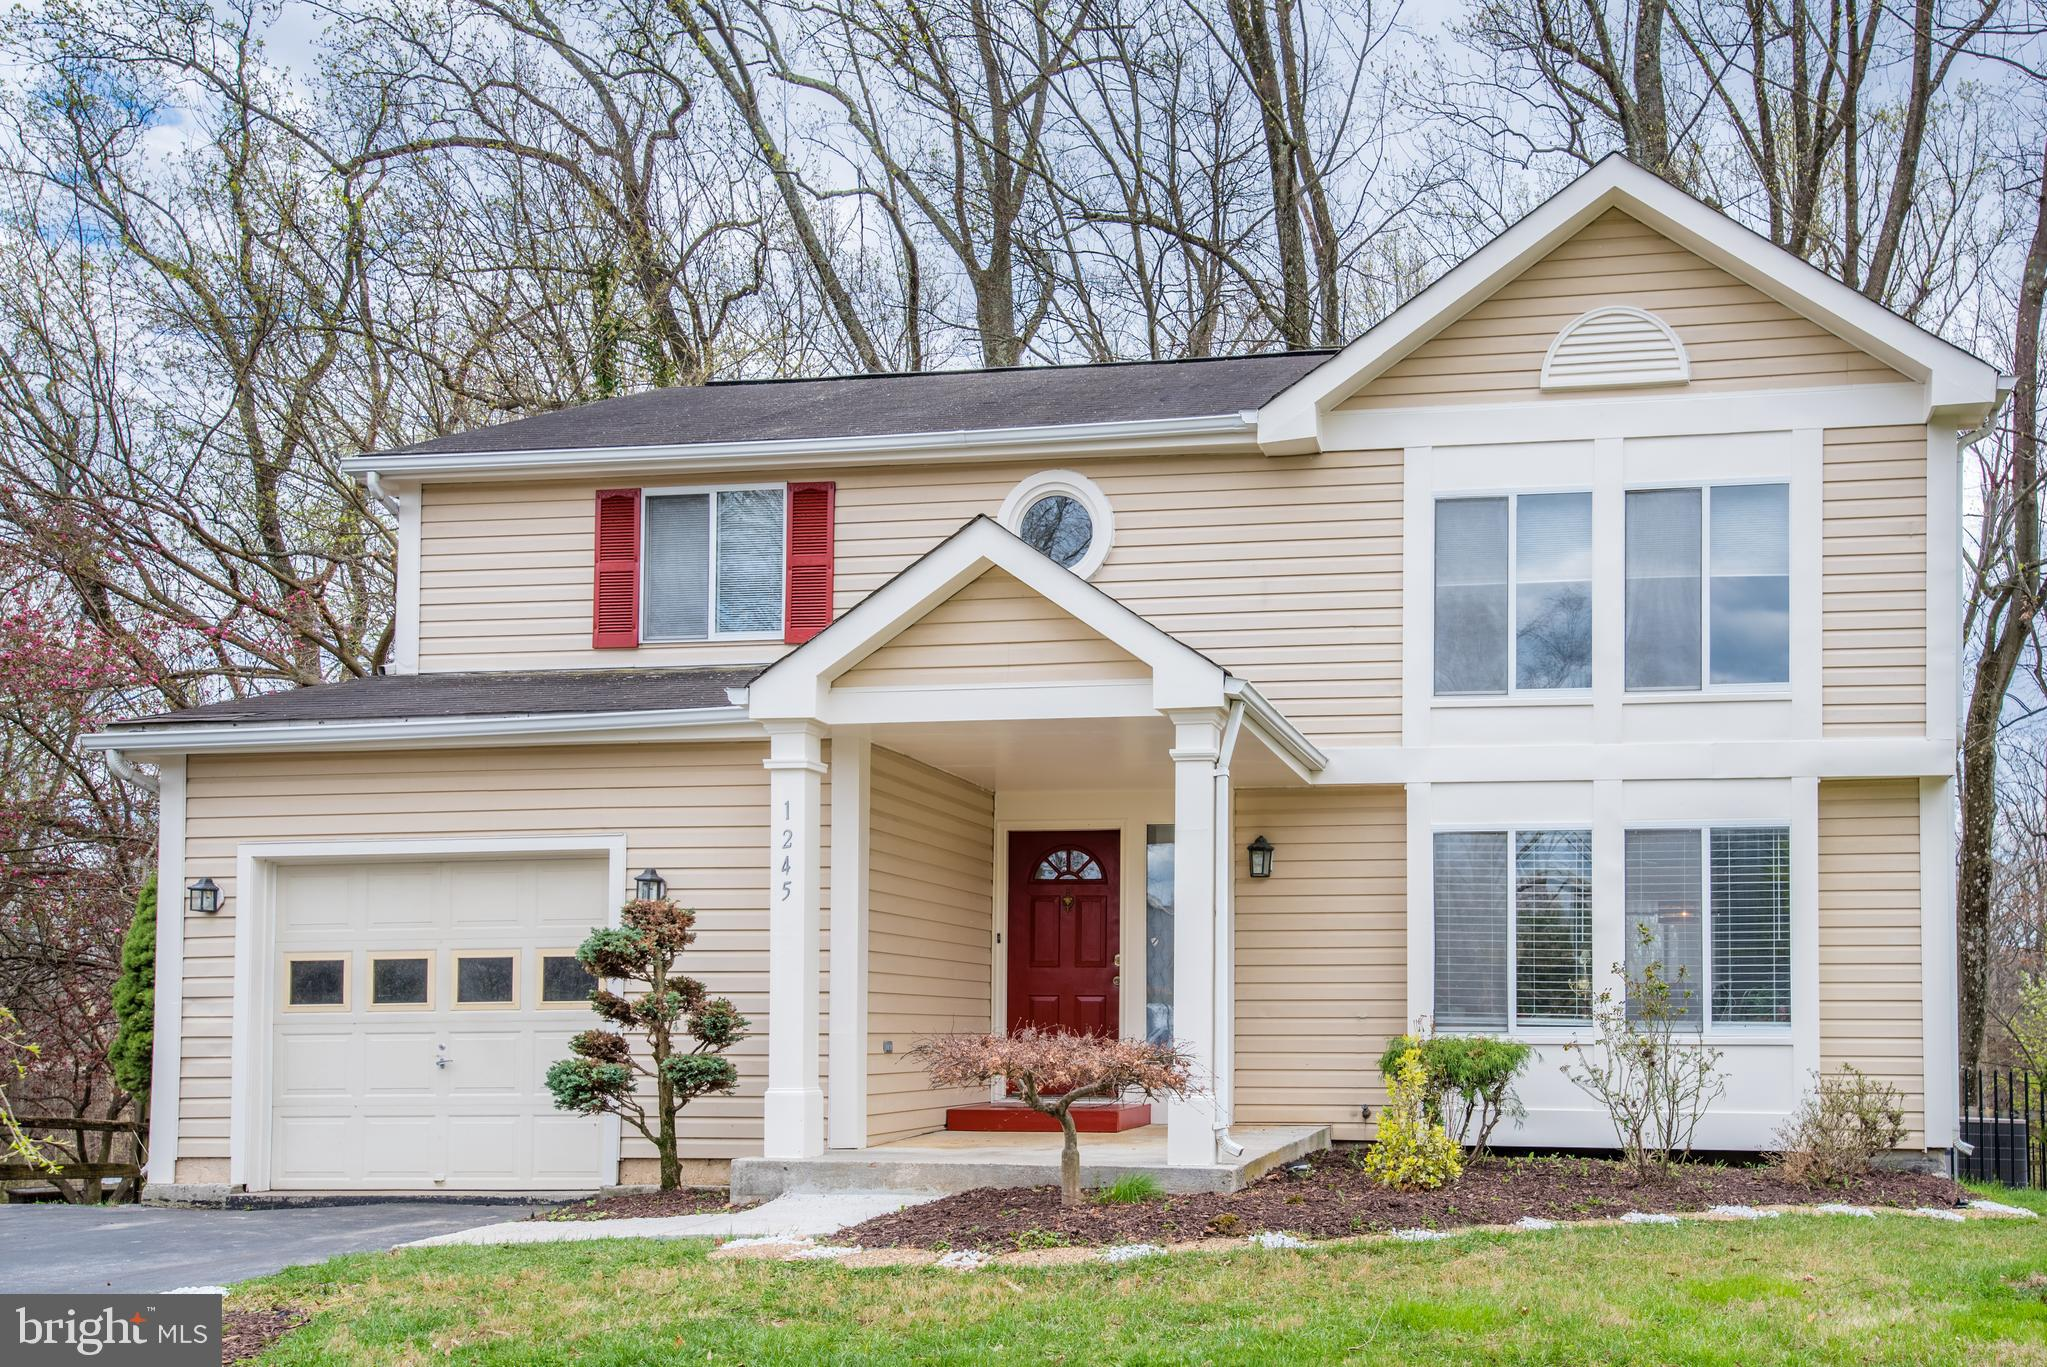 1245 CAVENDISH DRIVE, SILVER SPRING, MD 20905